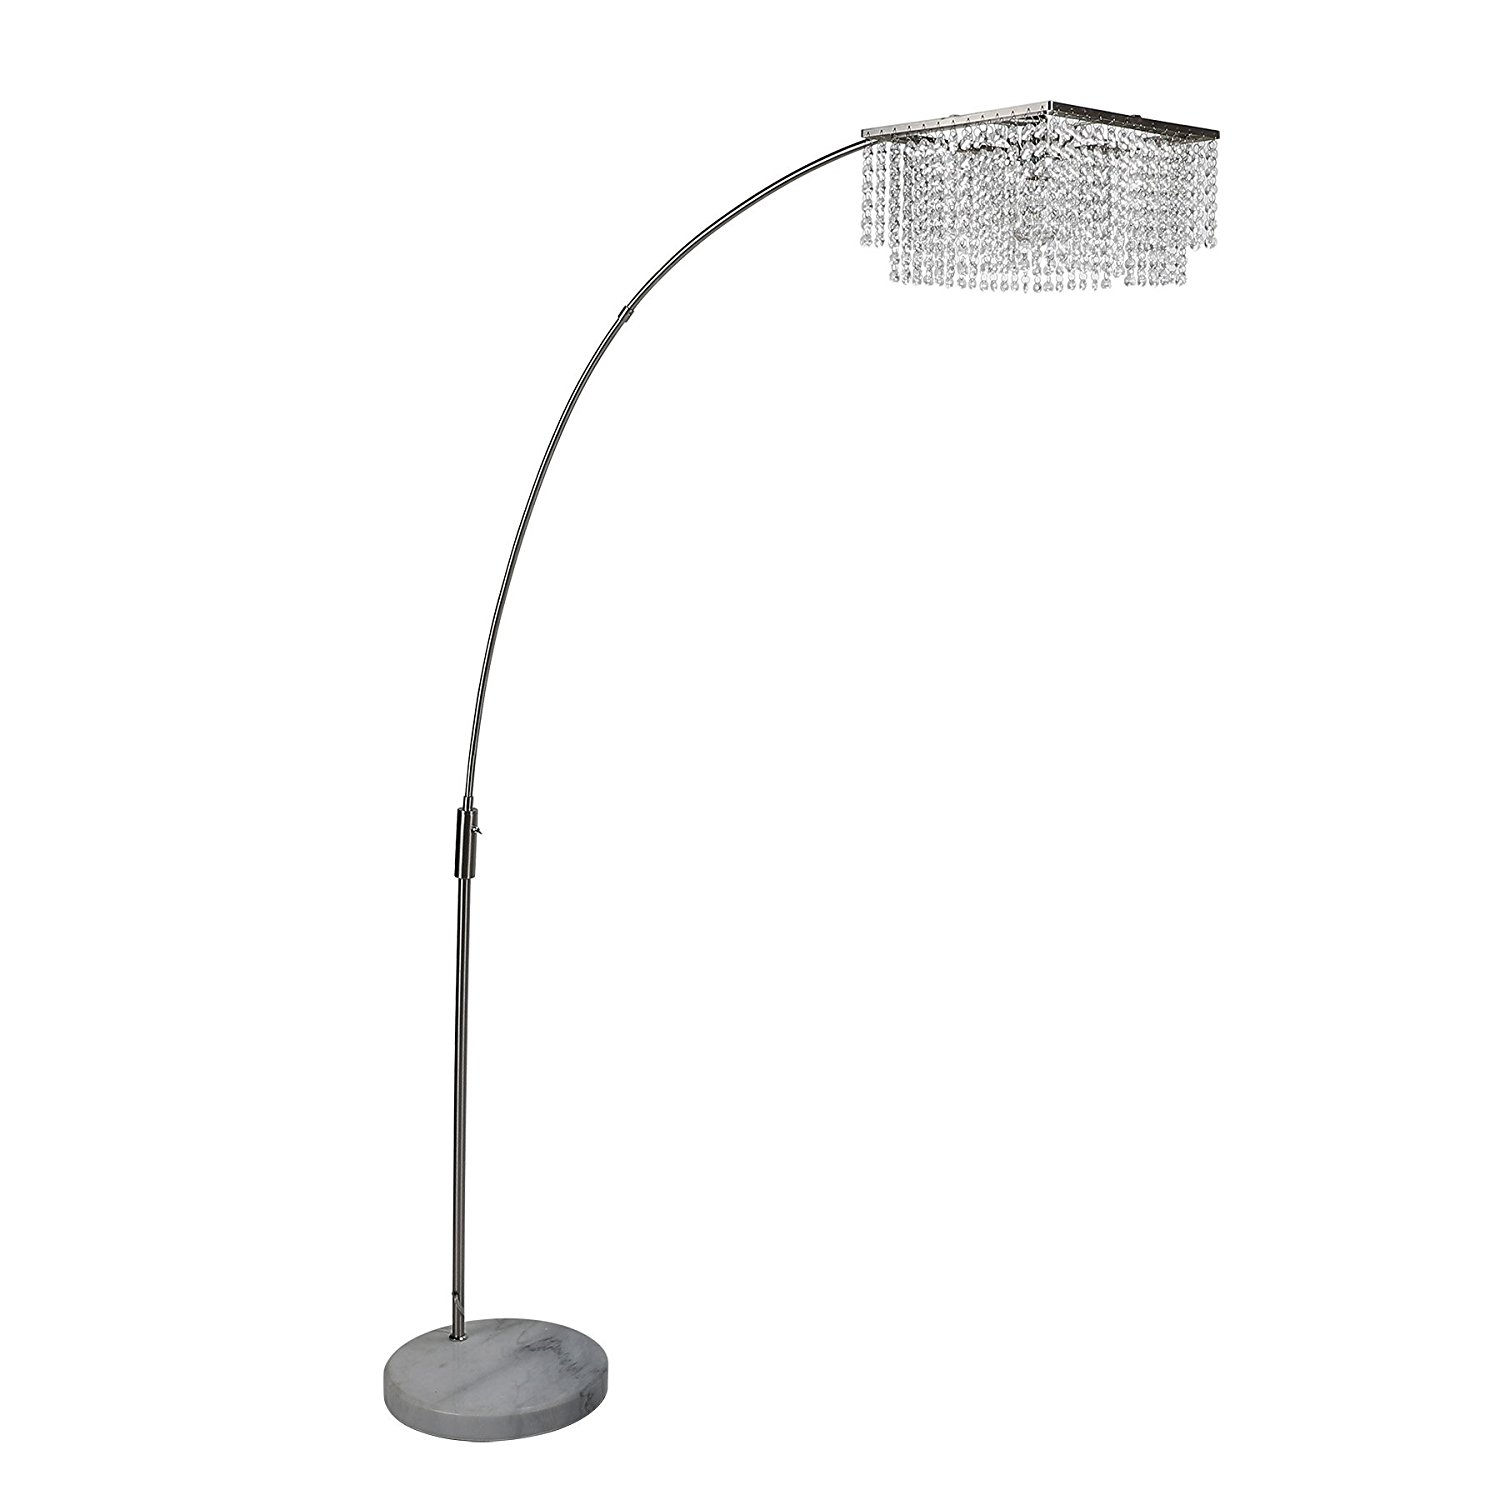 Cheap Modern Arch Floor Lamp Find Modern Arch Floor Lamp Deals On Line At Alibaba Com